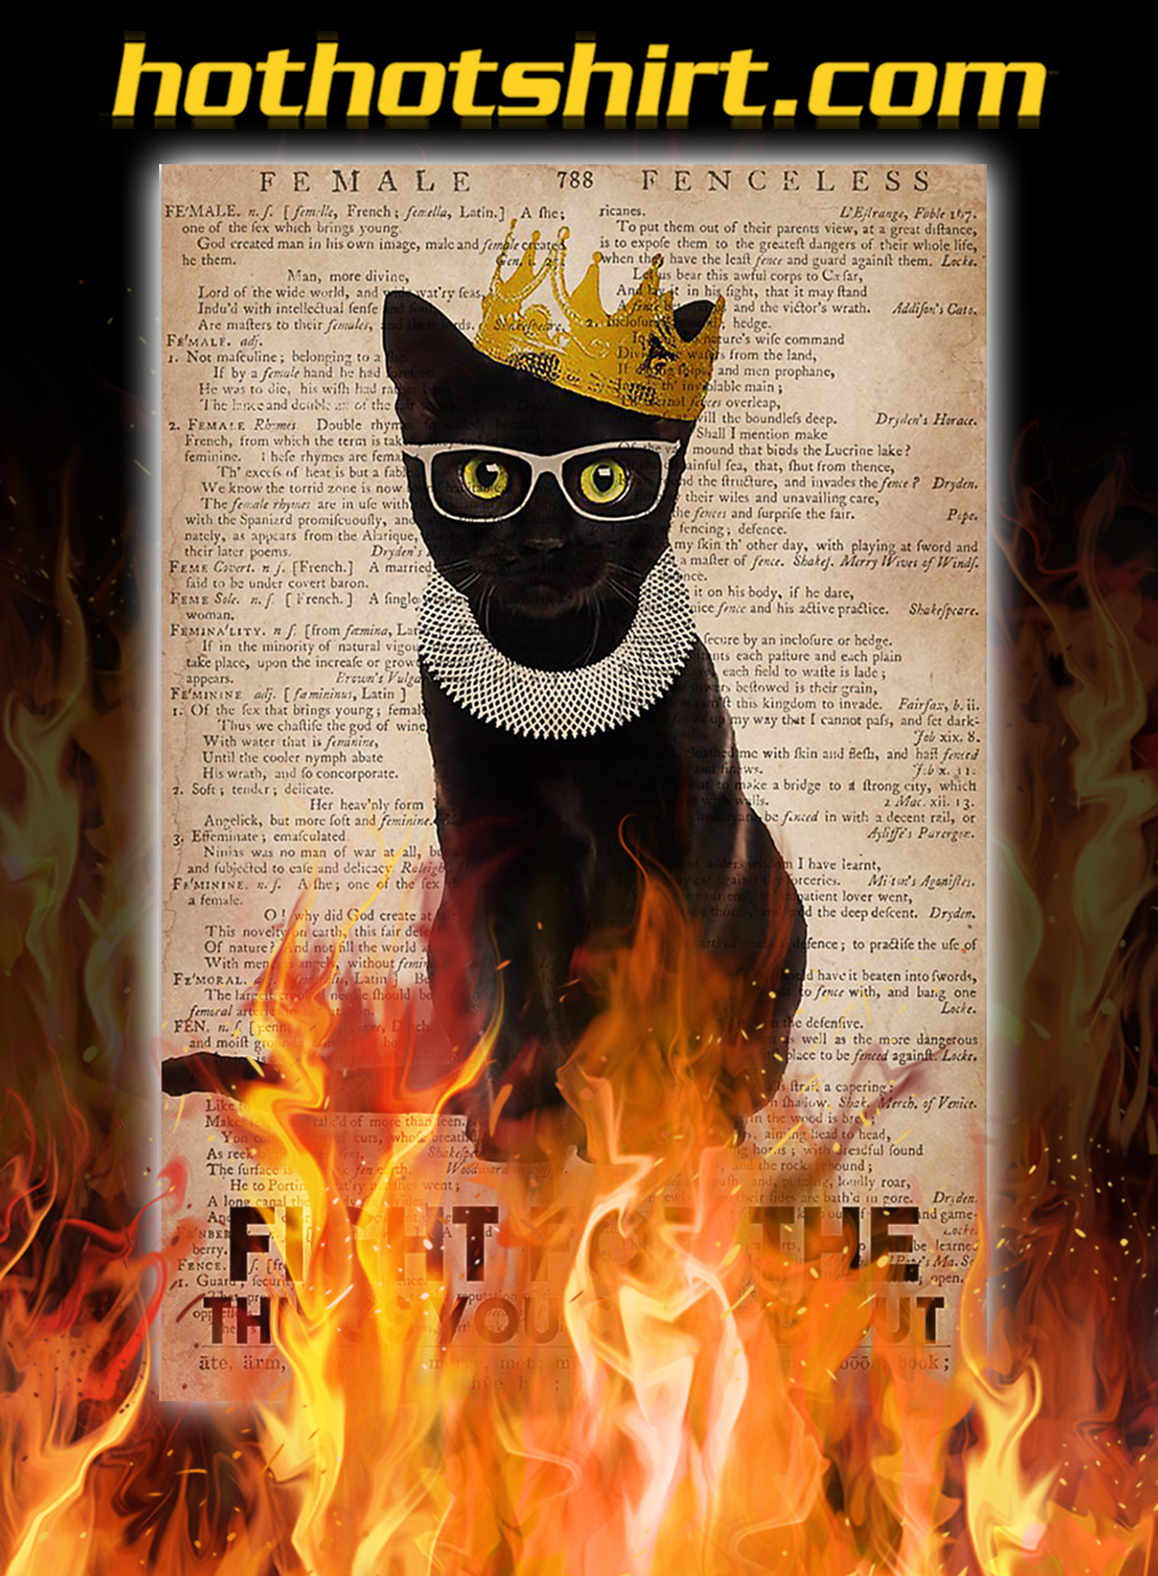 Feminist ruth bader ginsburg cat fight for the things you care about poster - A2